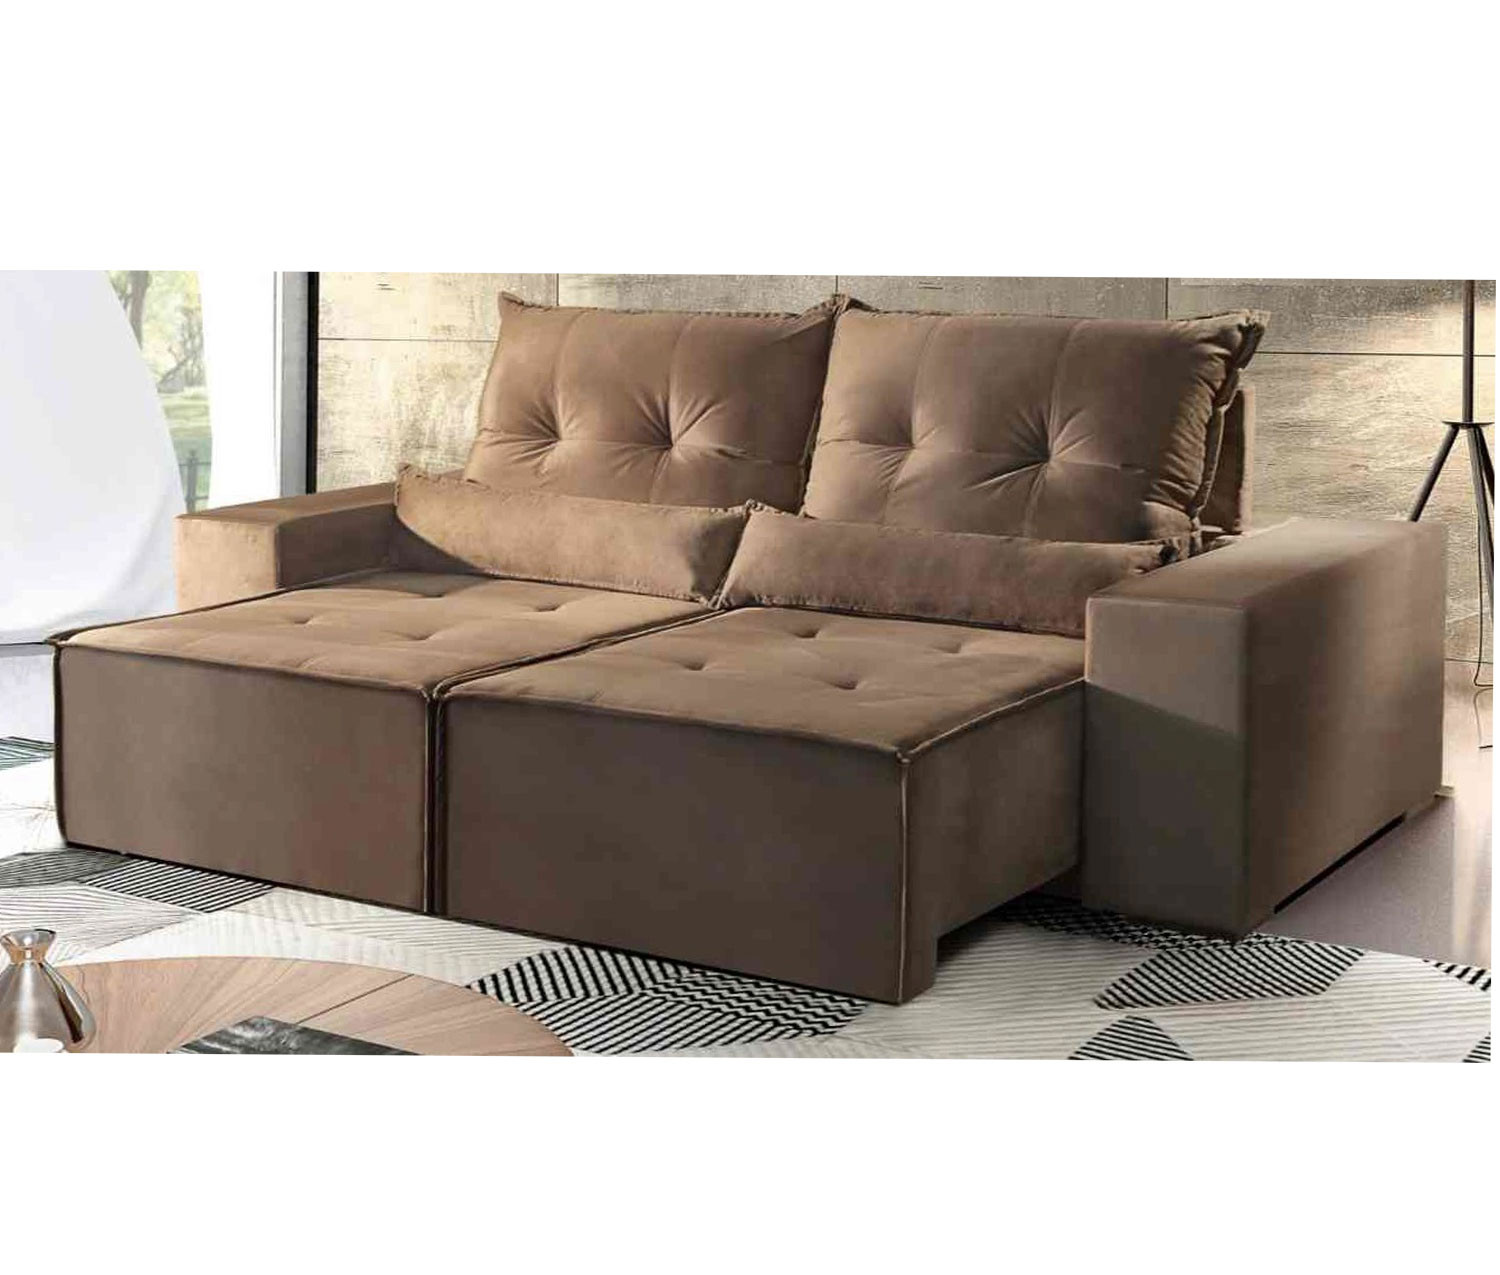 Sofa Retratil Uba Mg Sofa Retratil Reclinavel Belize Suede Castor